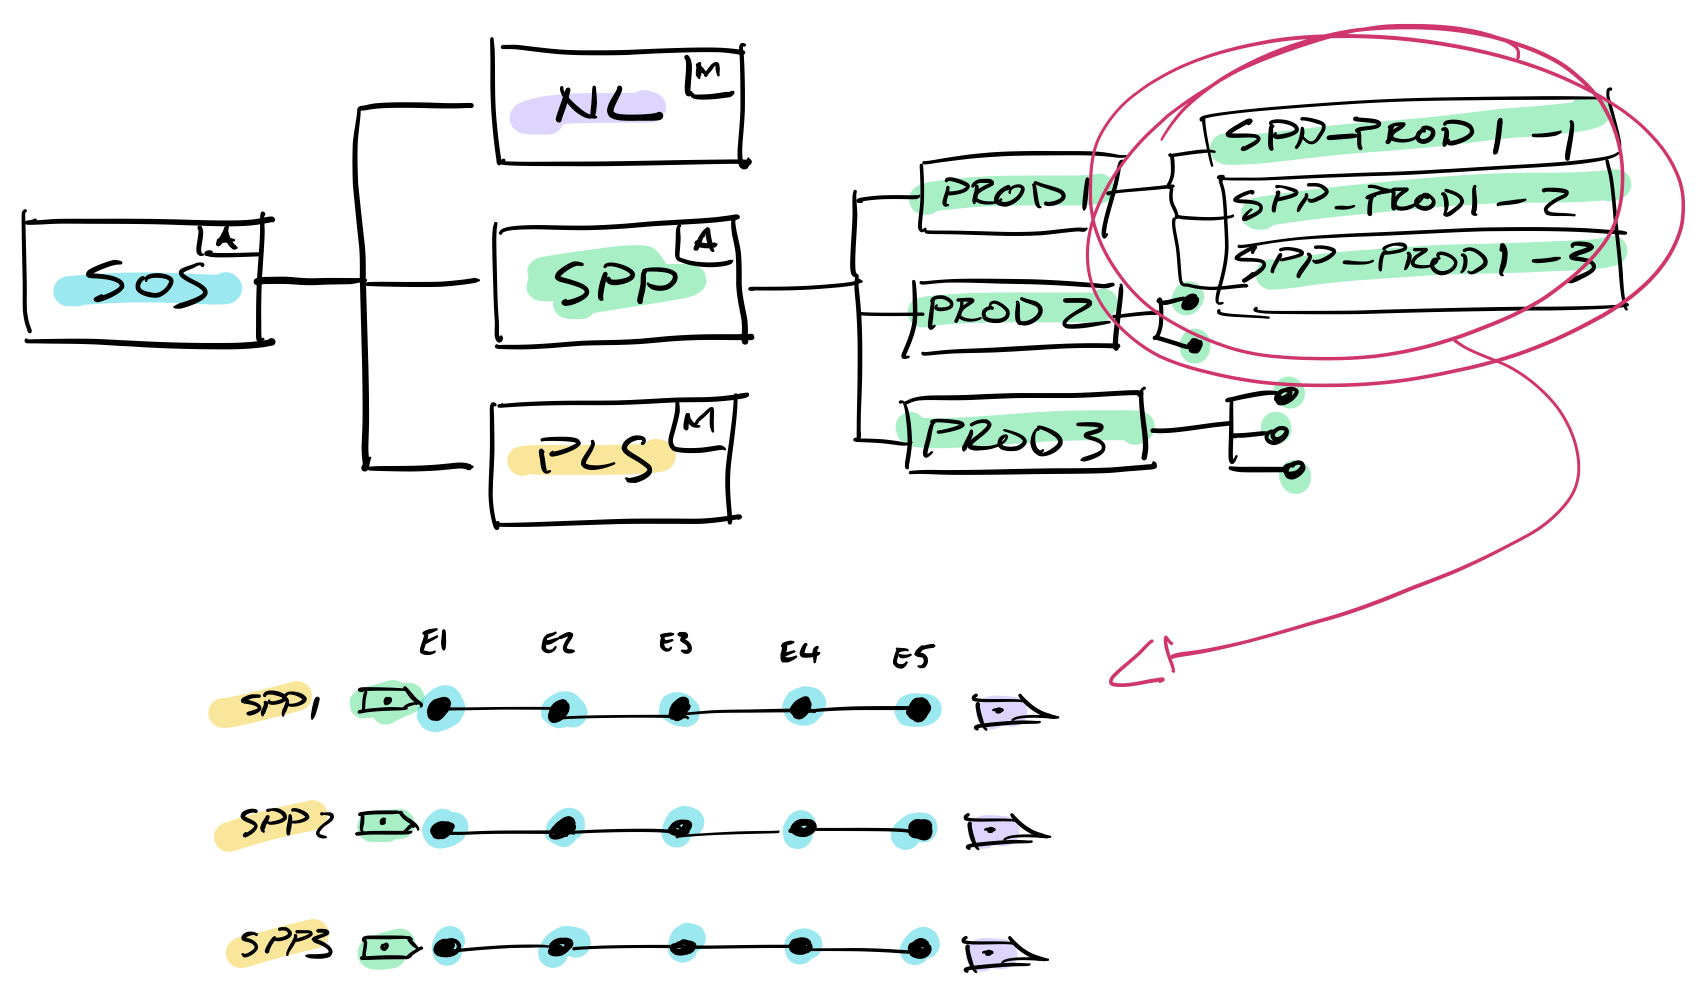 Diagram of a Story-Powered Promotions (SPP) Workflow